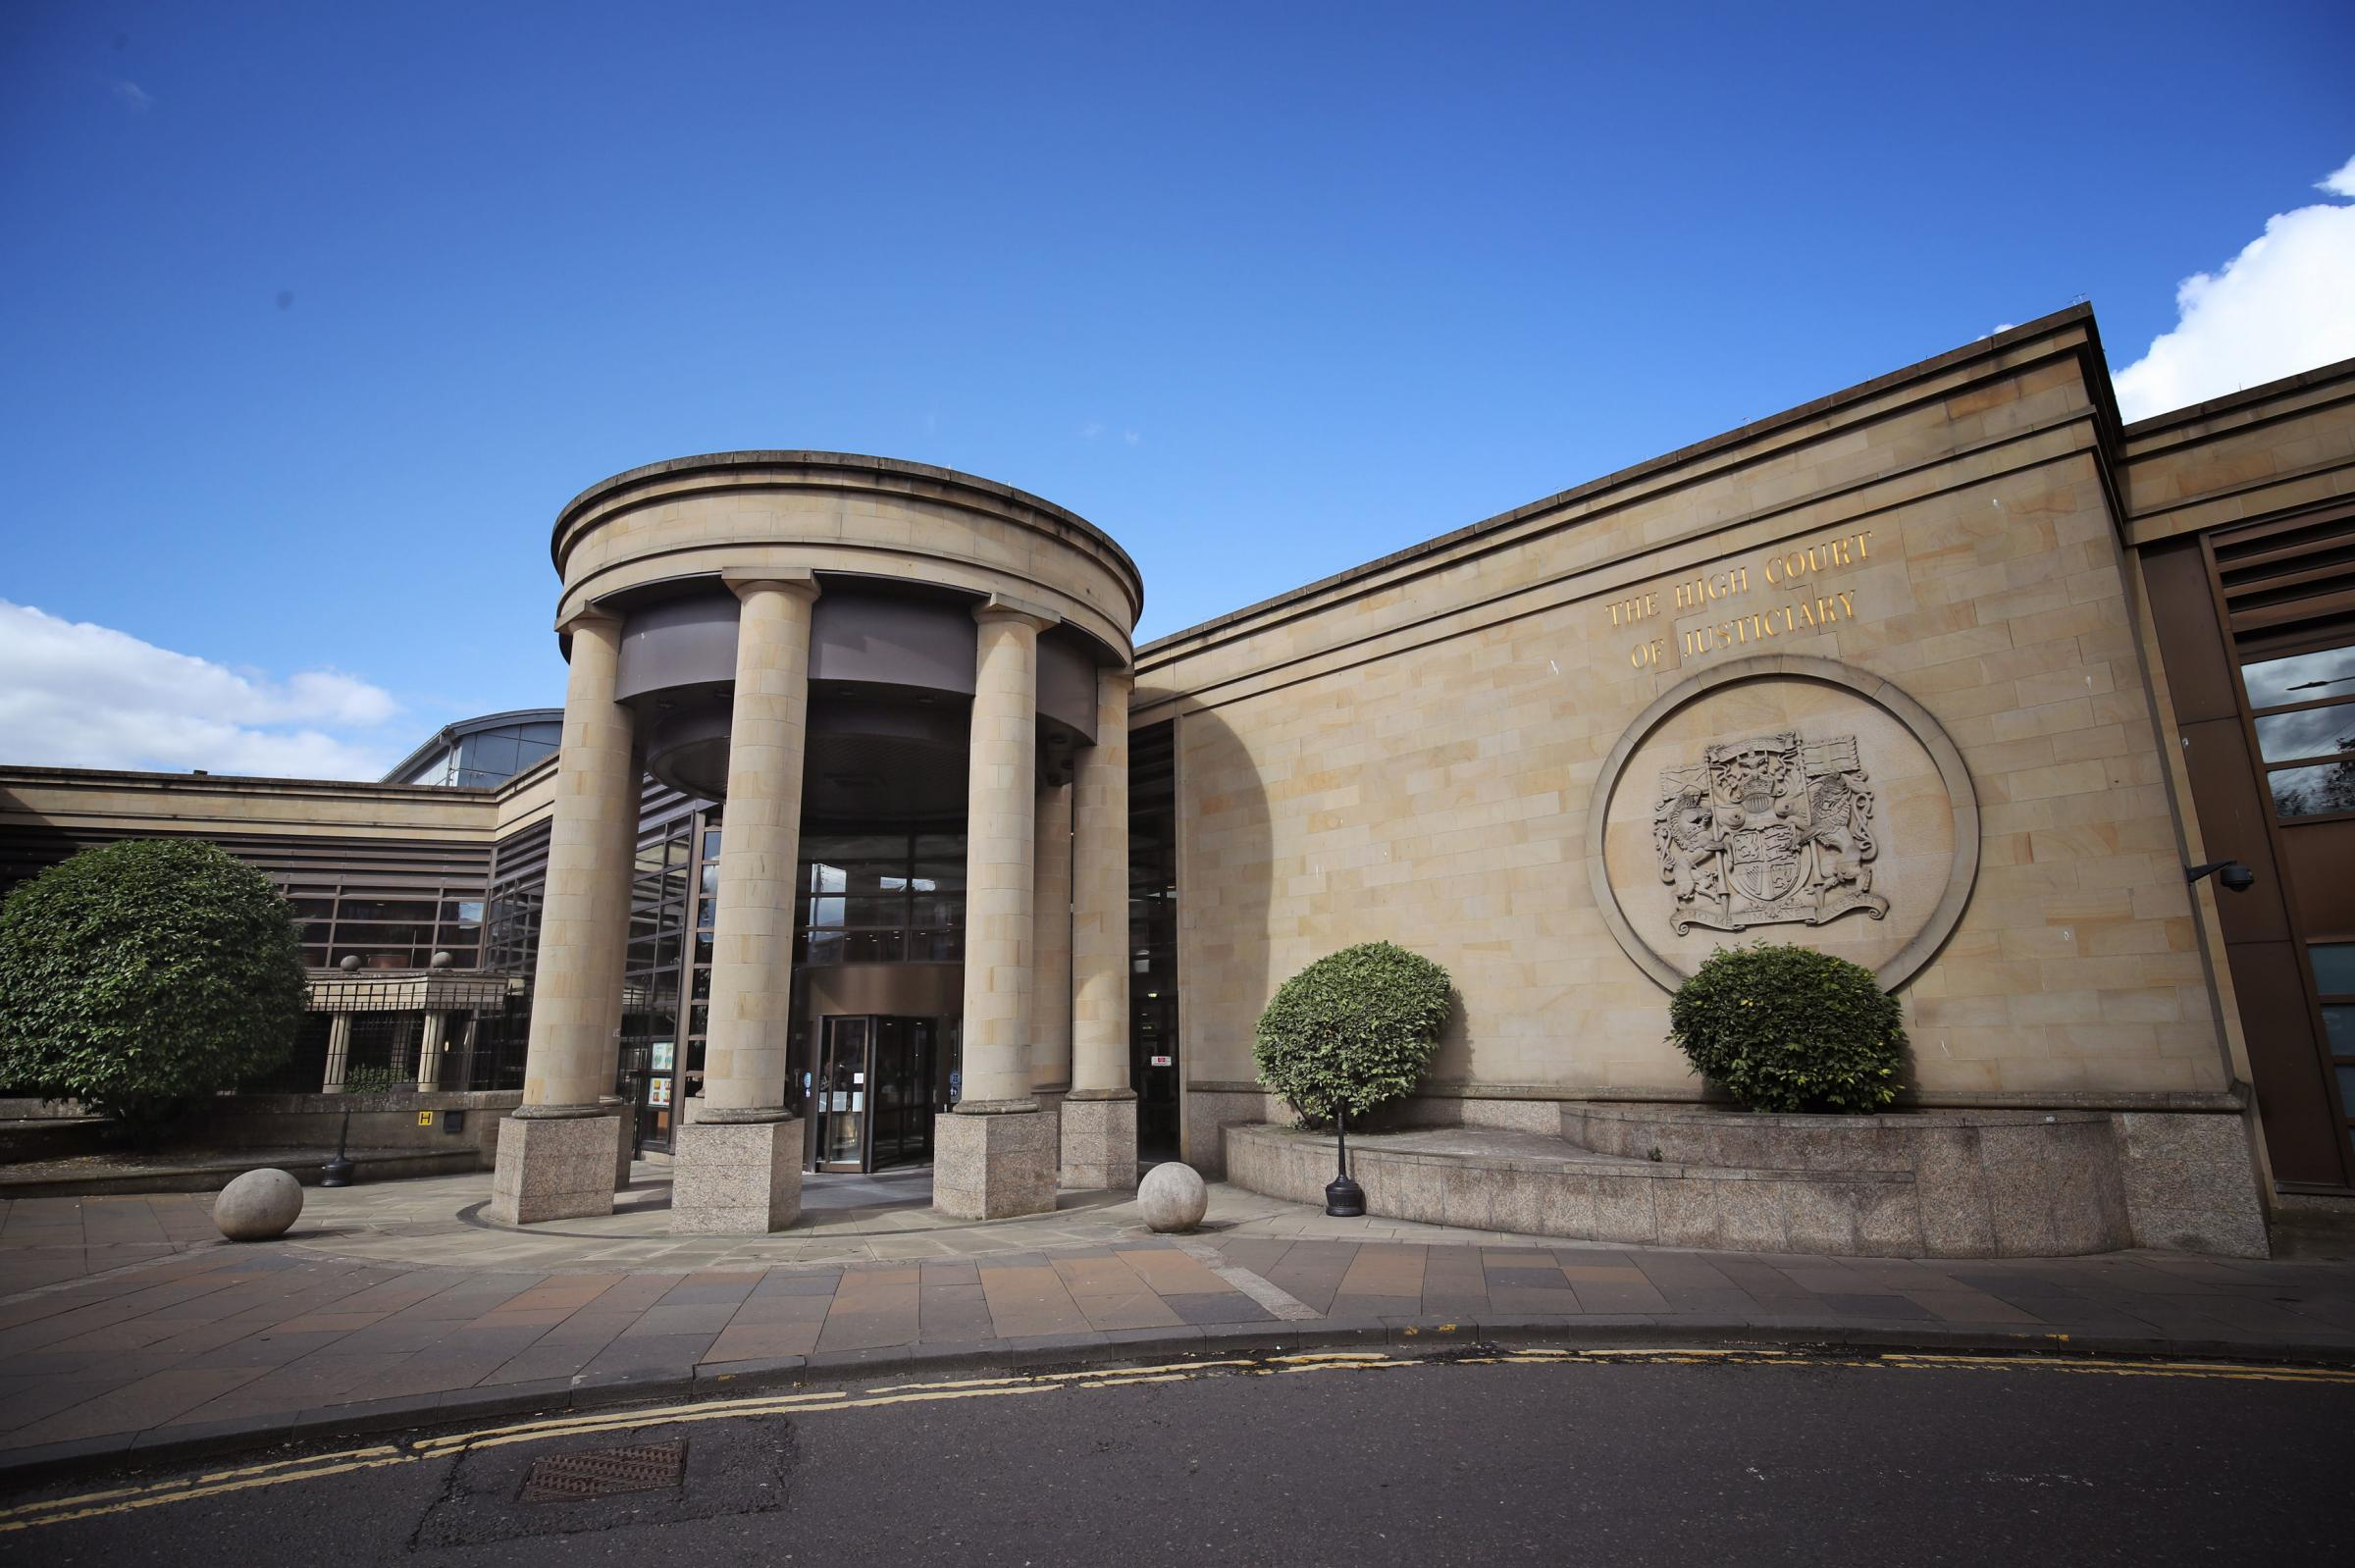 High Court Glasgow: Third member of organised crime group jailed